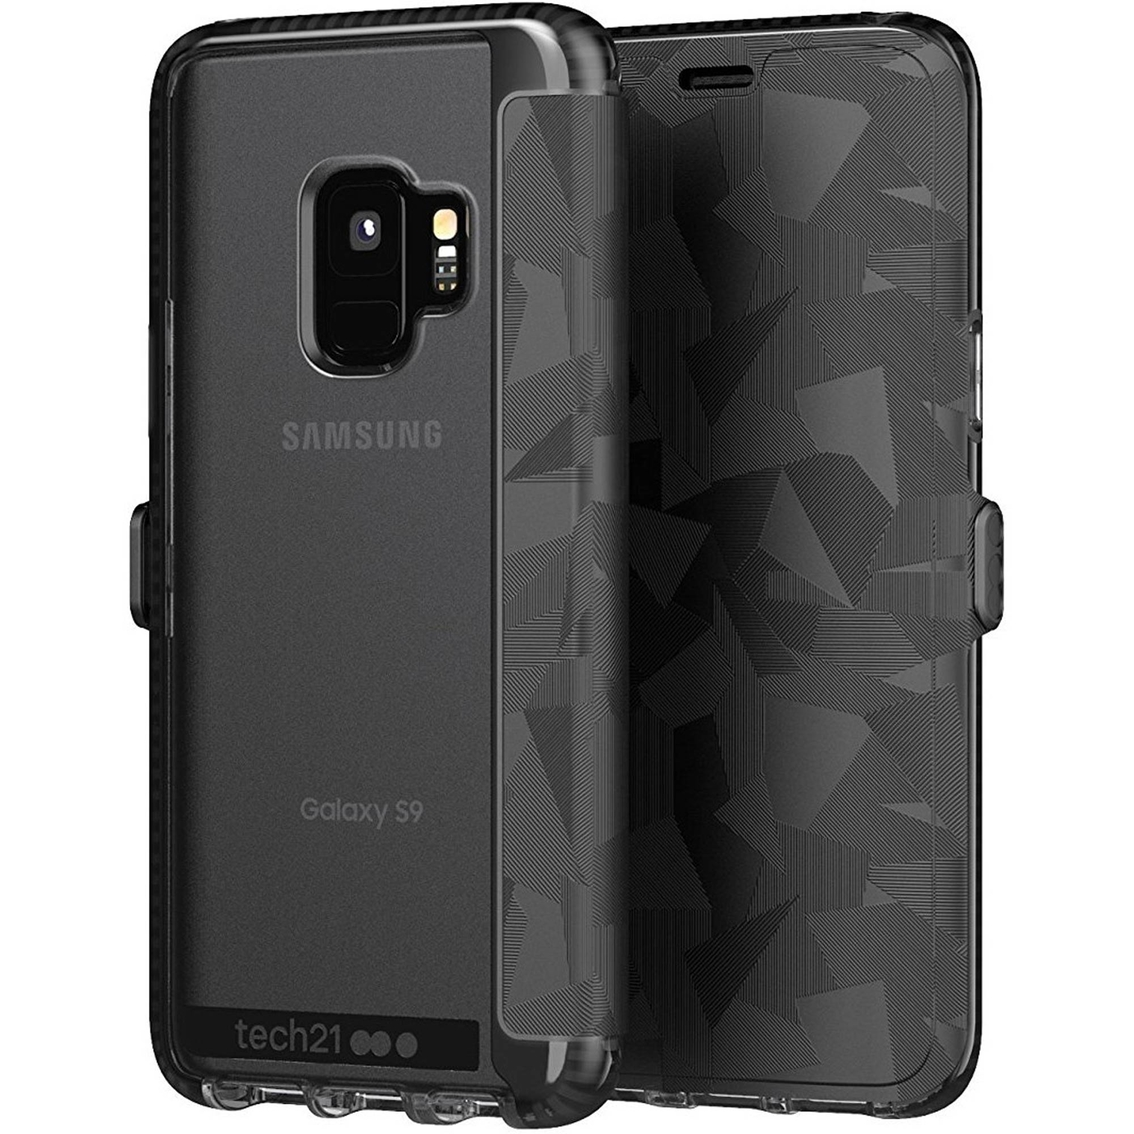 huge discount abe34 996f1 Tech21 Evo Wallet Samsung Galaxy S9 Case | Cell Phone Cases ...